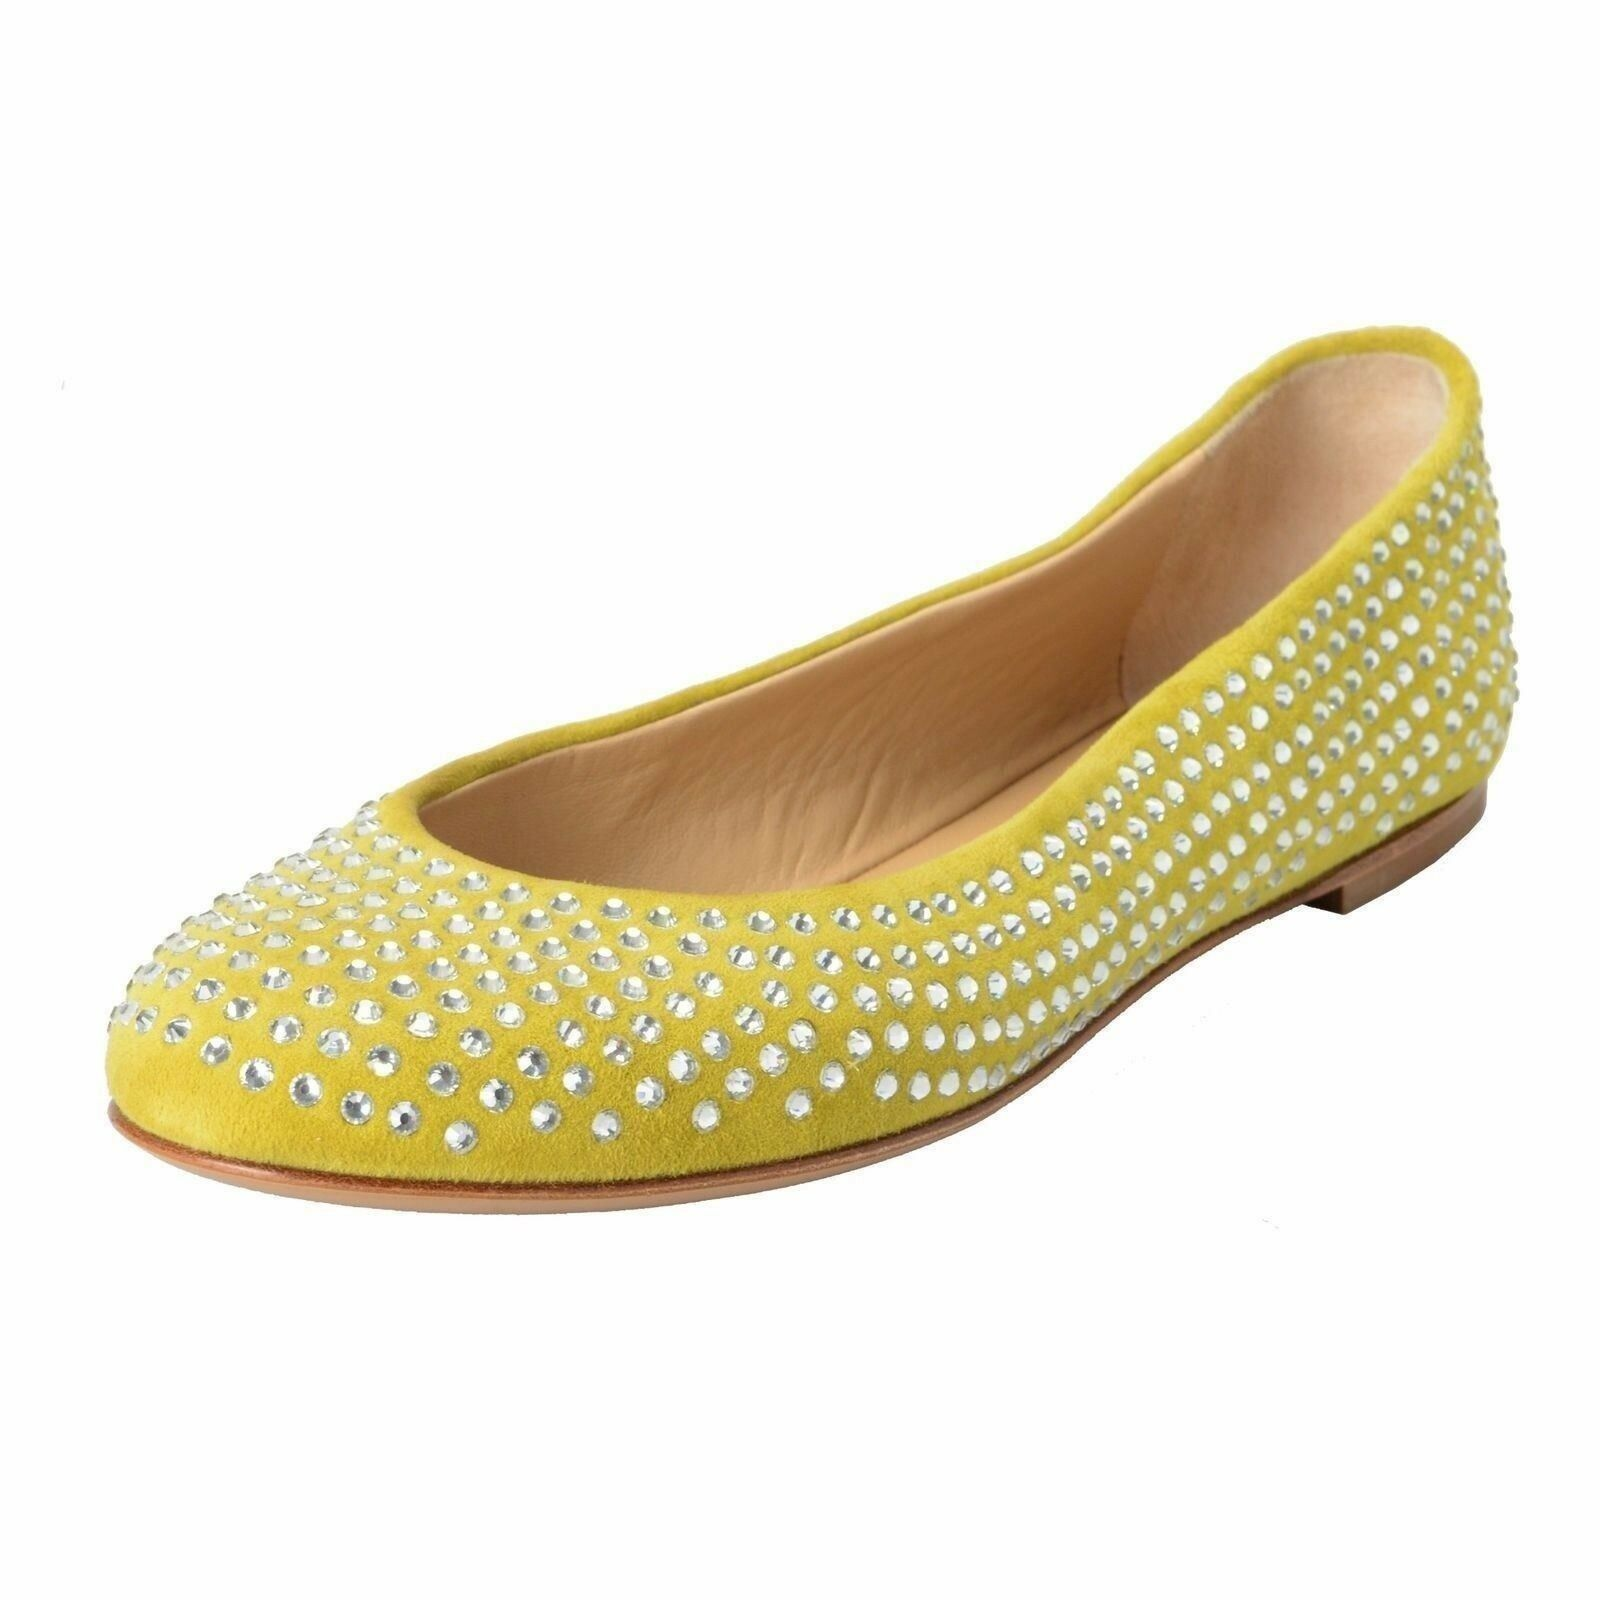 Giuseppe Zanotti Design Women's Green Suede Beaded Ballet Flats shoes US 8 IT 39